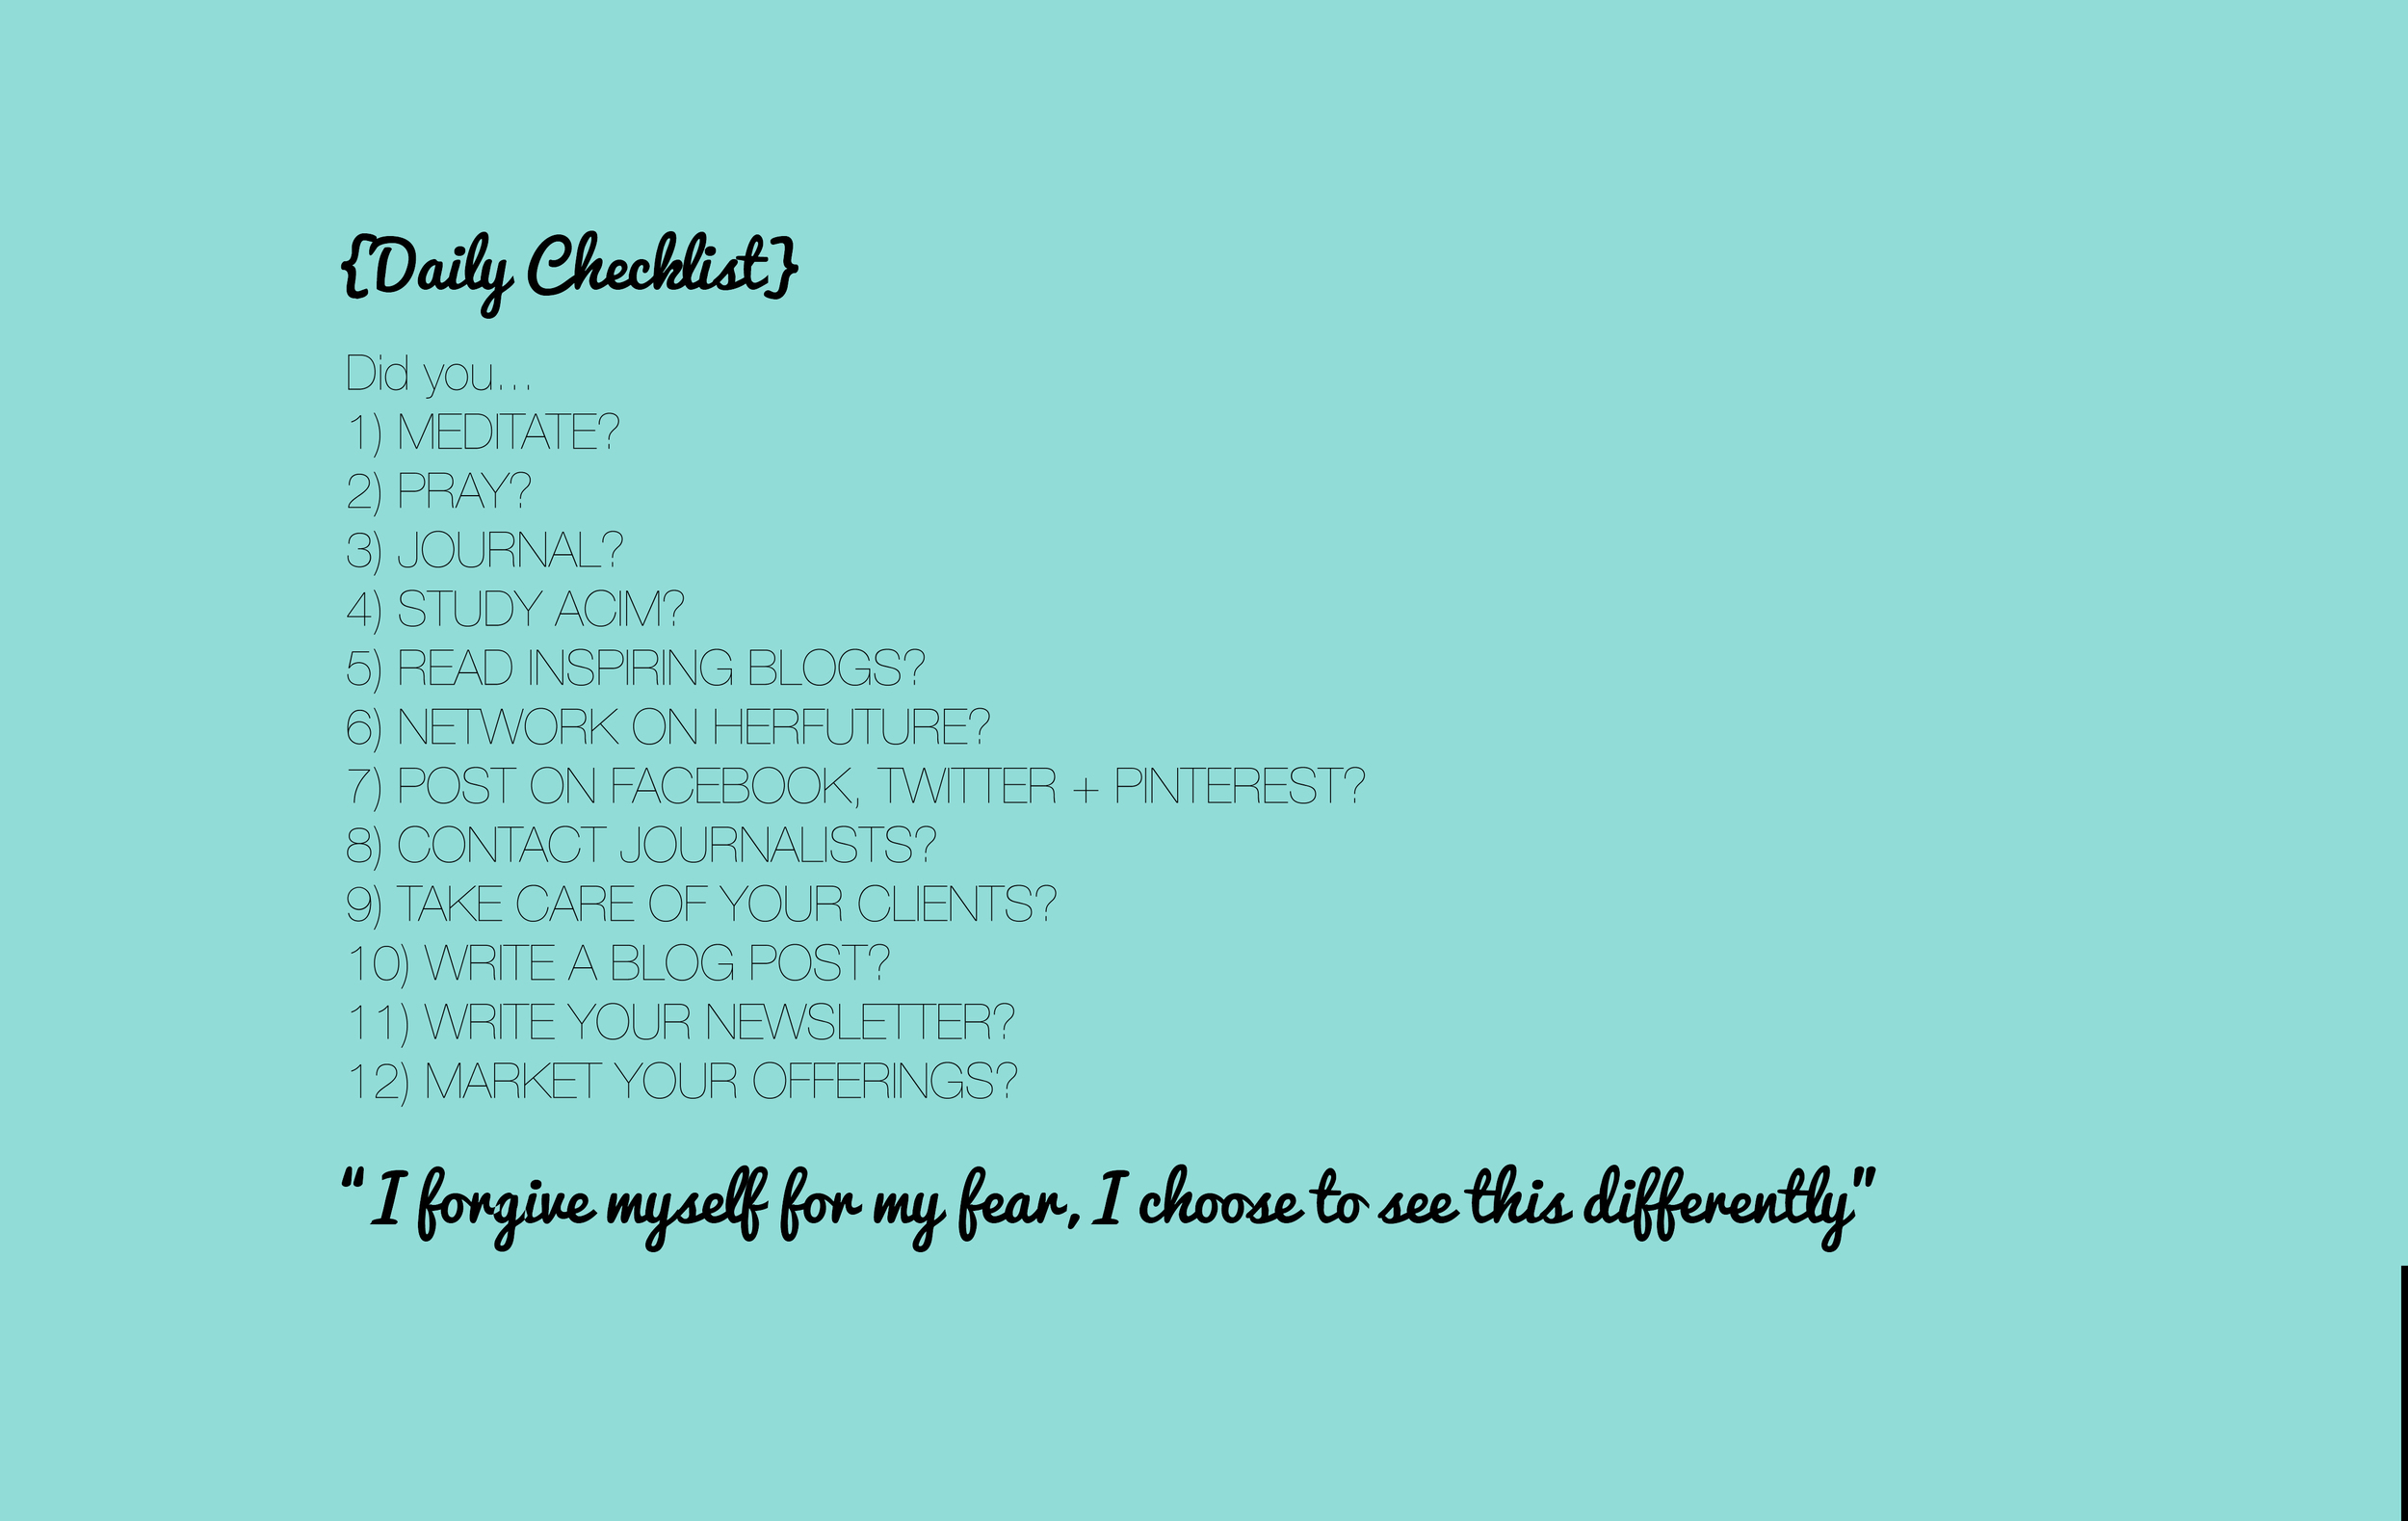 My daily checklist that I have as my laptop wallpaper, for your action step inspiration xo